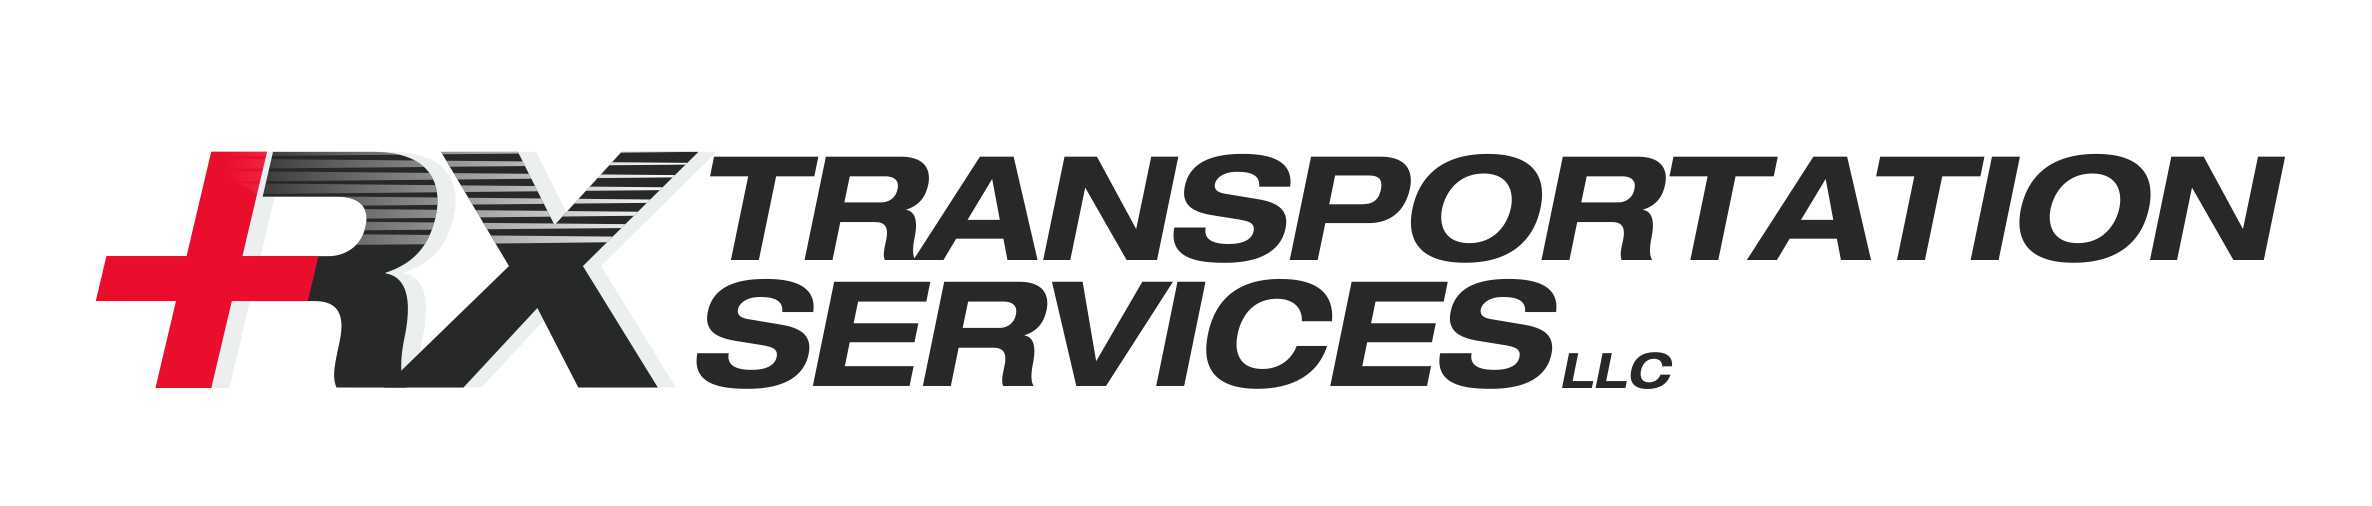 Rx Transportation Services LLC